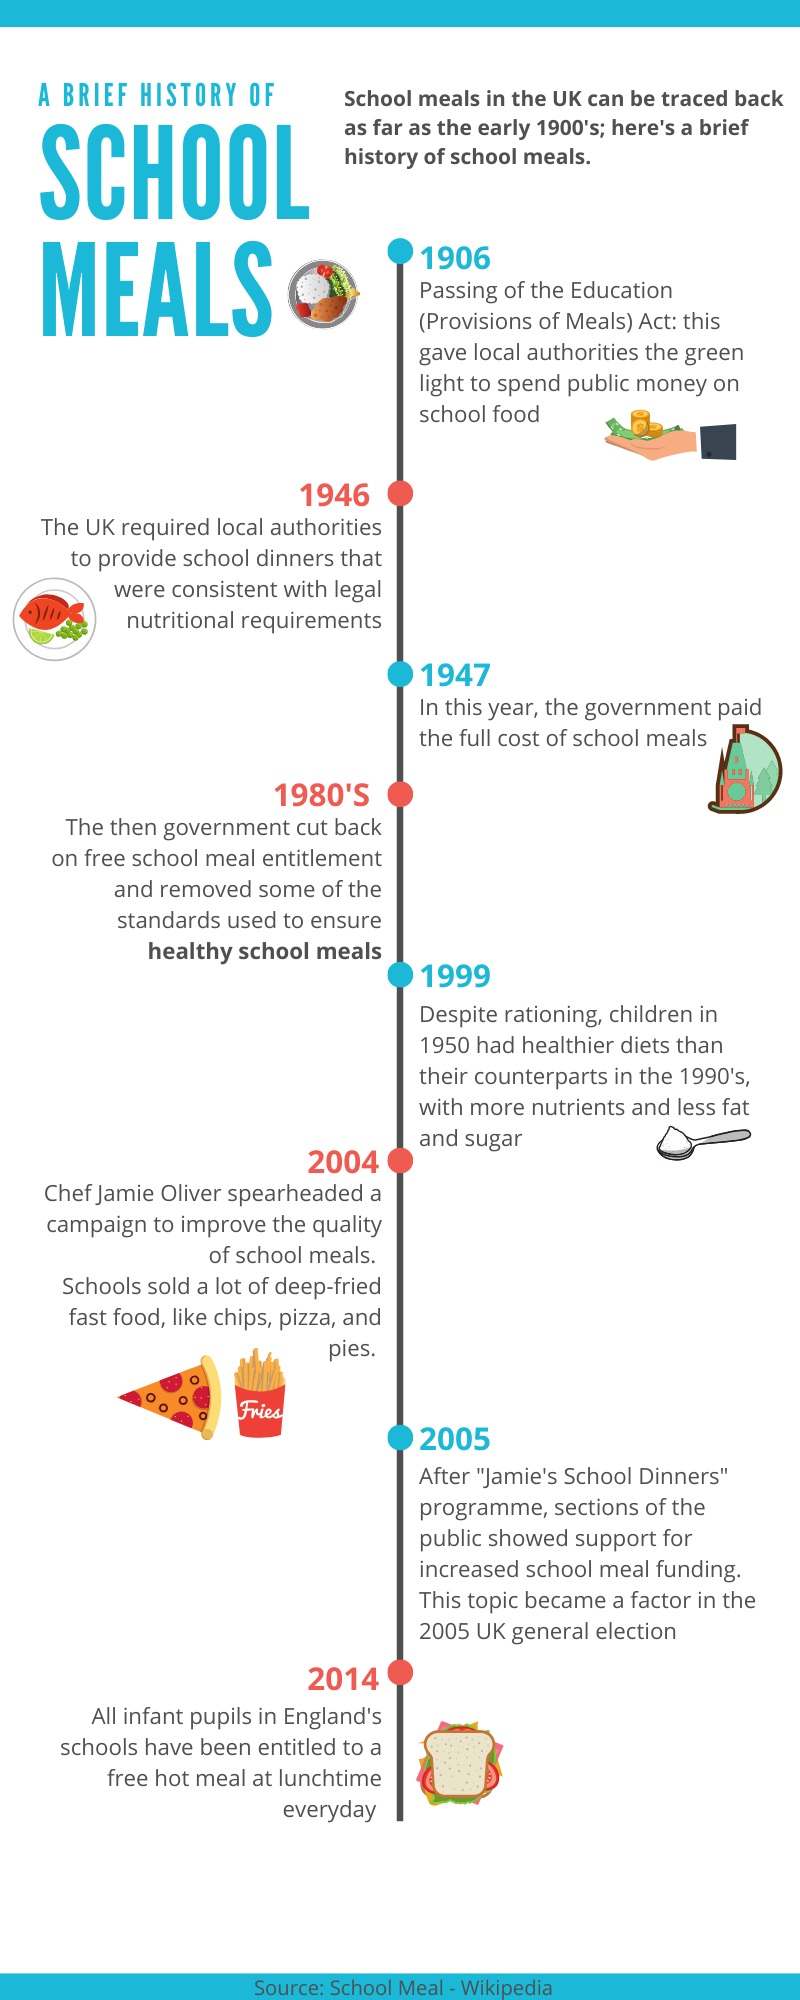 A Brief History of School Meals